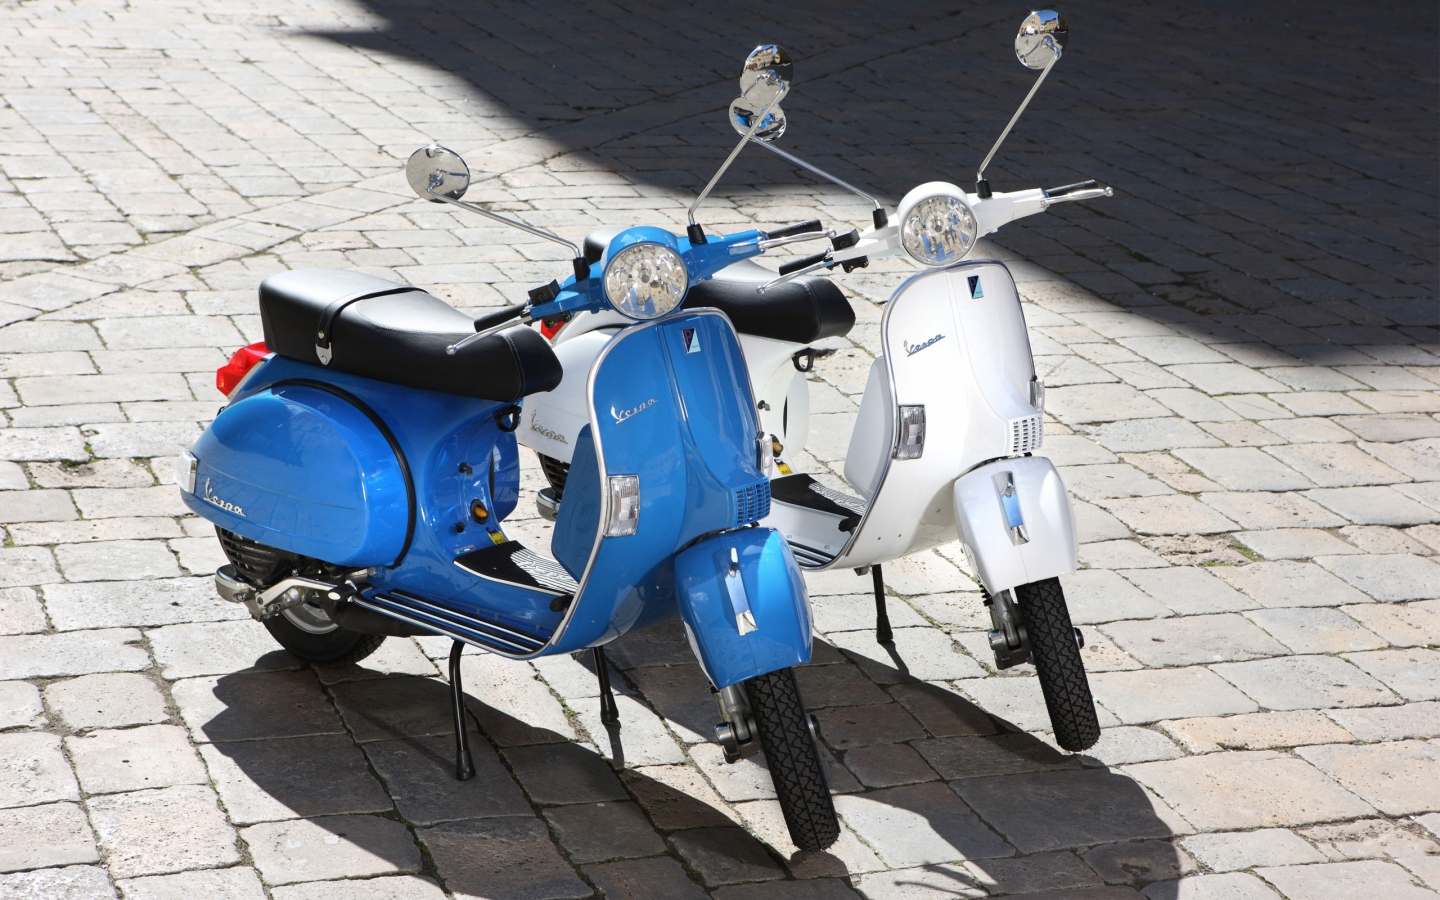 Vespa PX 150A 2011 for 1440 x 900 widescreen resolution